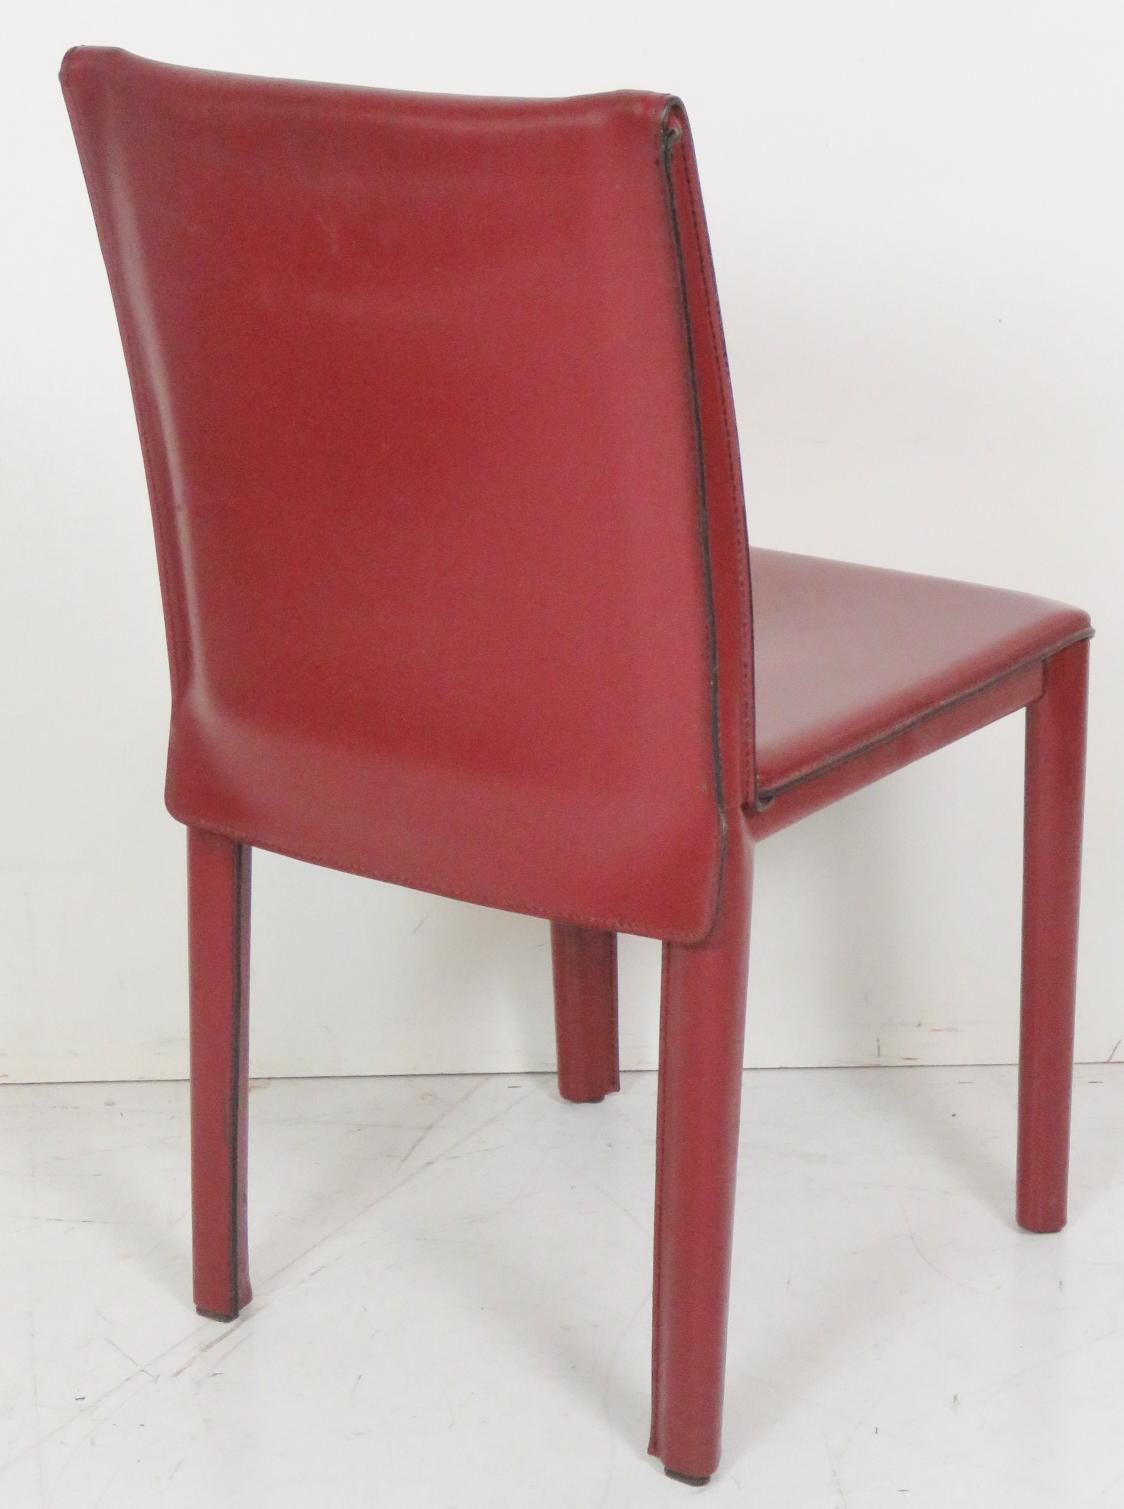 Exceptional Casillas Red Leather Side Chairs   Set Of 6   Image 5 Of 5